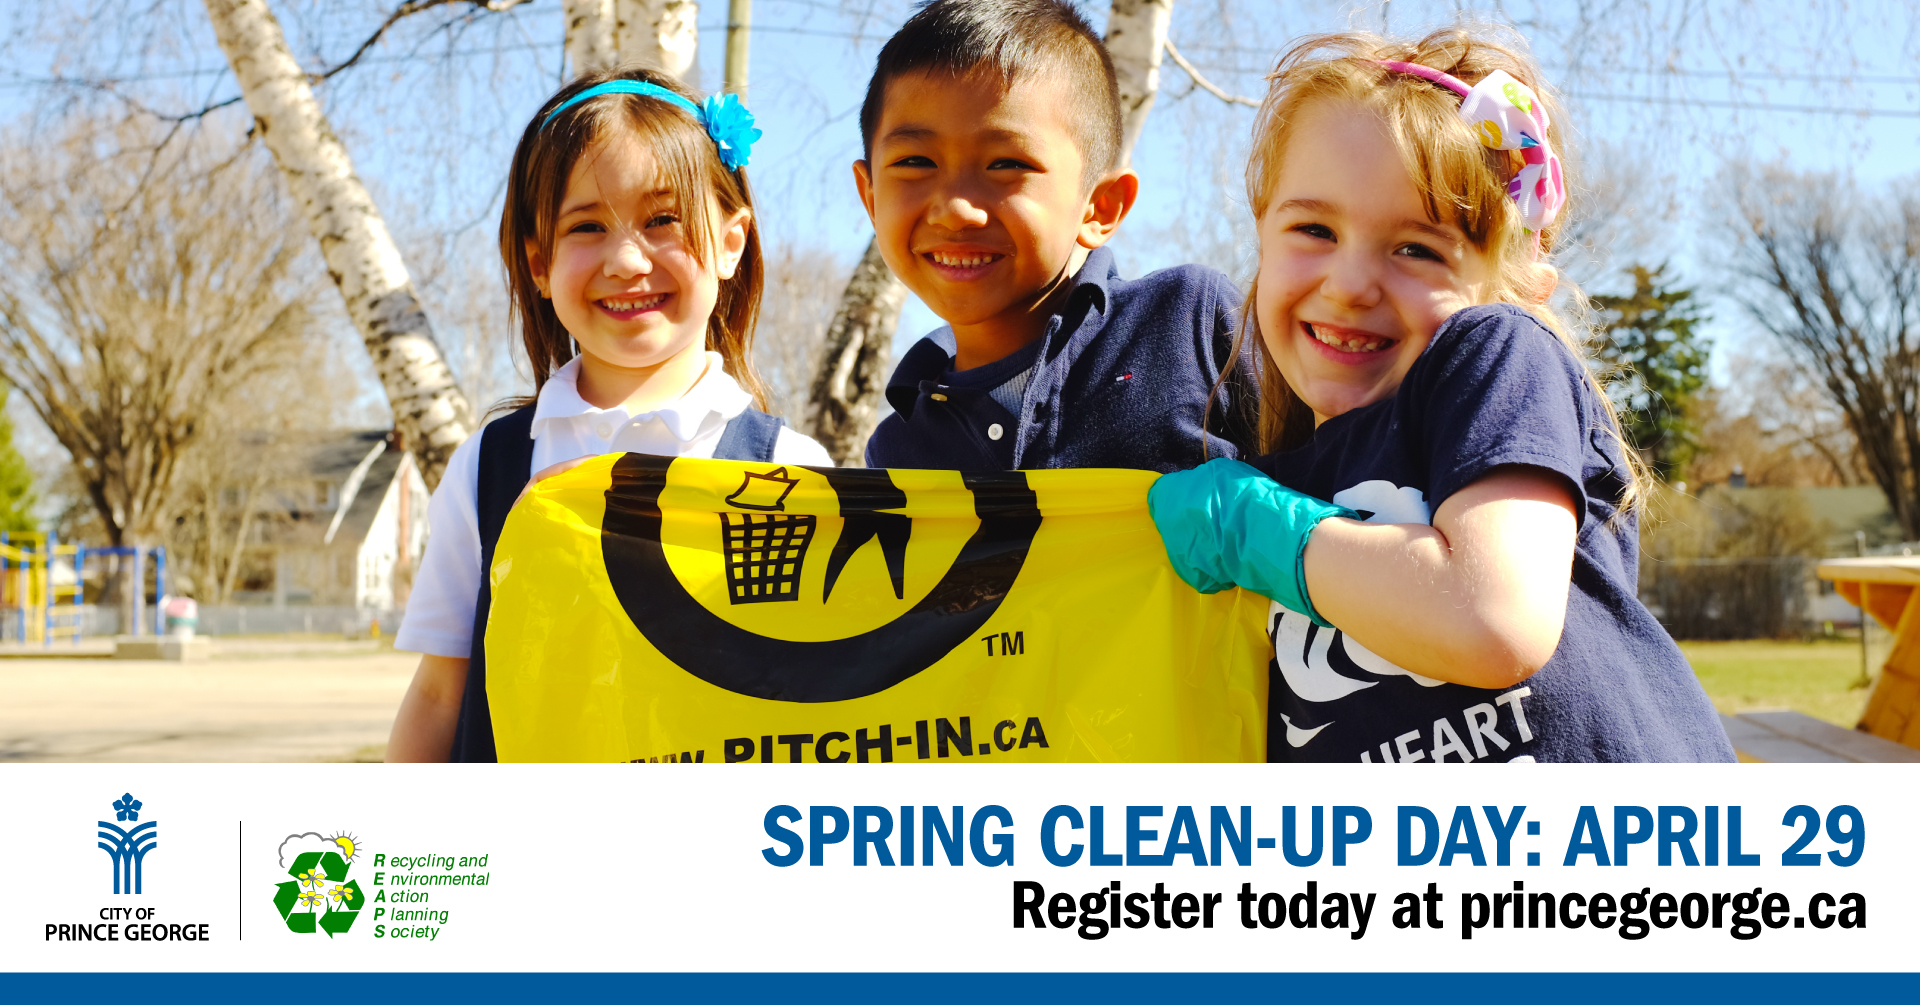 Annual Spring Clean-Up Day - City of Prince George